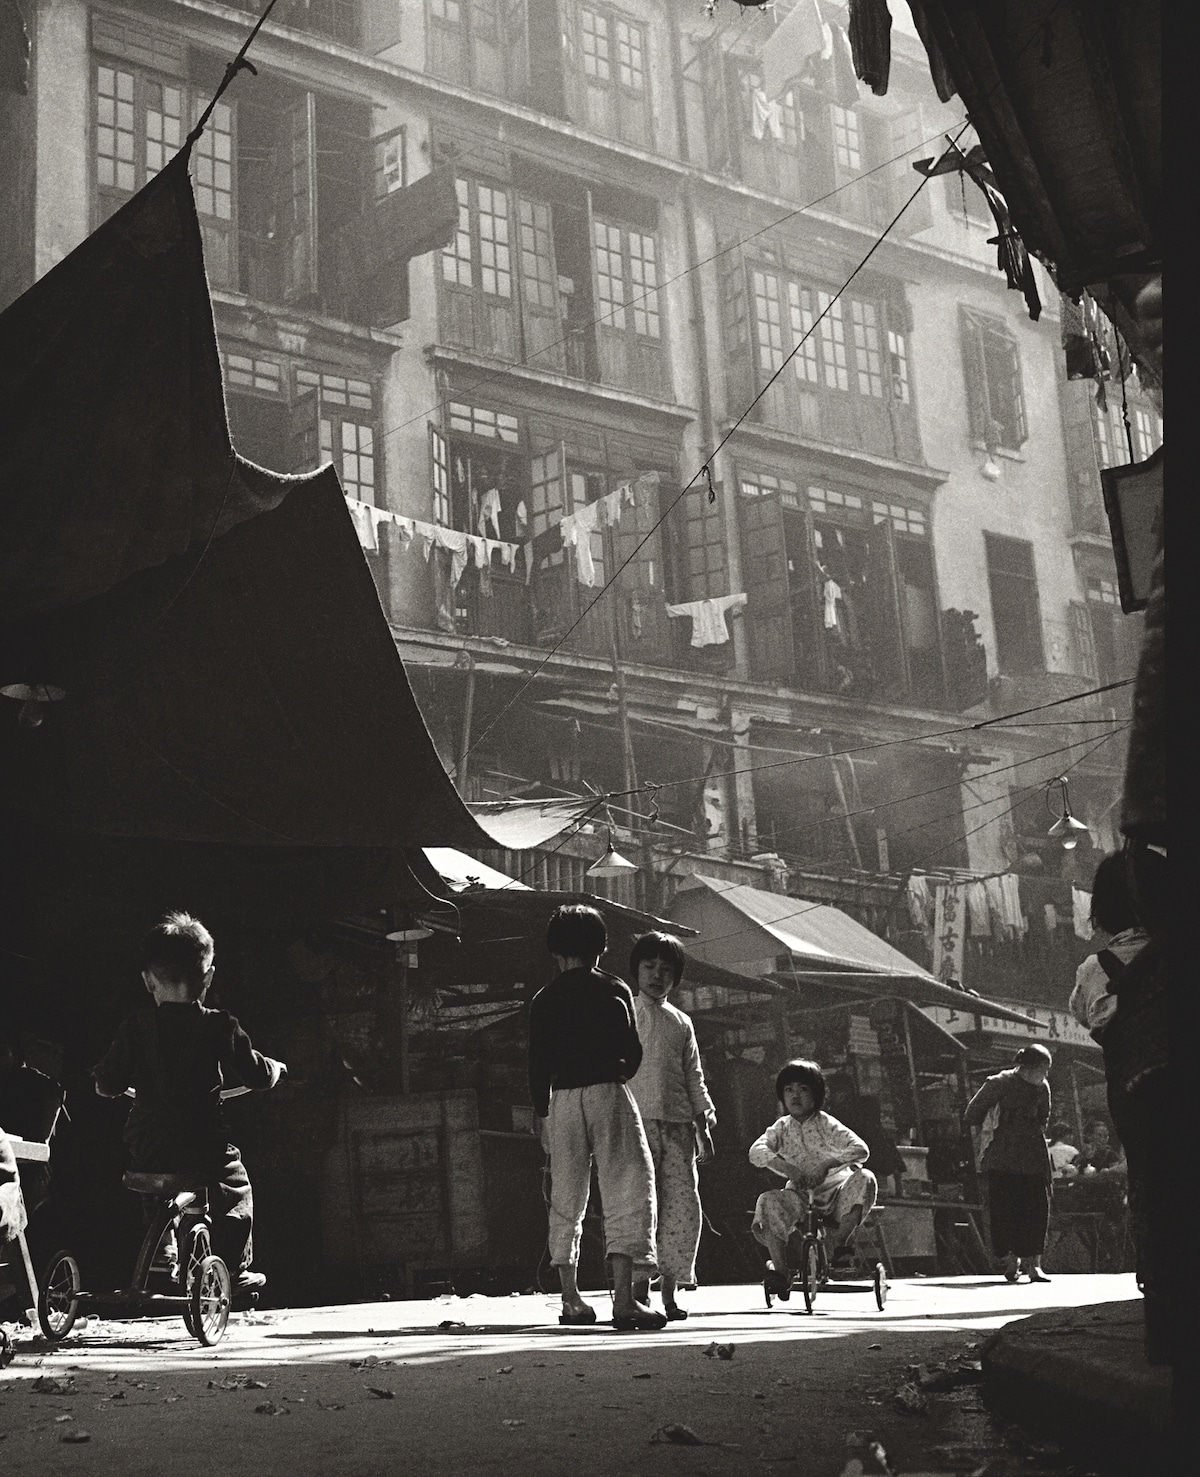 Fan-Ho-Age-of-Innocence-in-Sheung-Wan-童趣-Hong-Kong-1950s-and-60s-courtesy-of-Blue-Lotus-Gallery